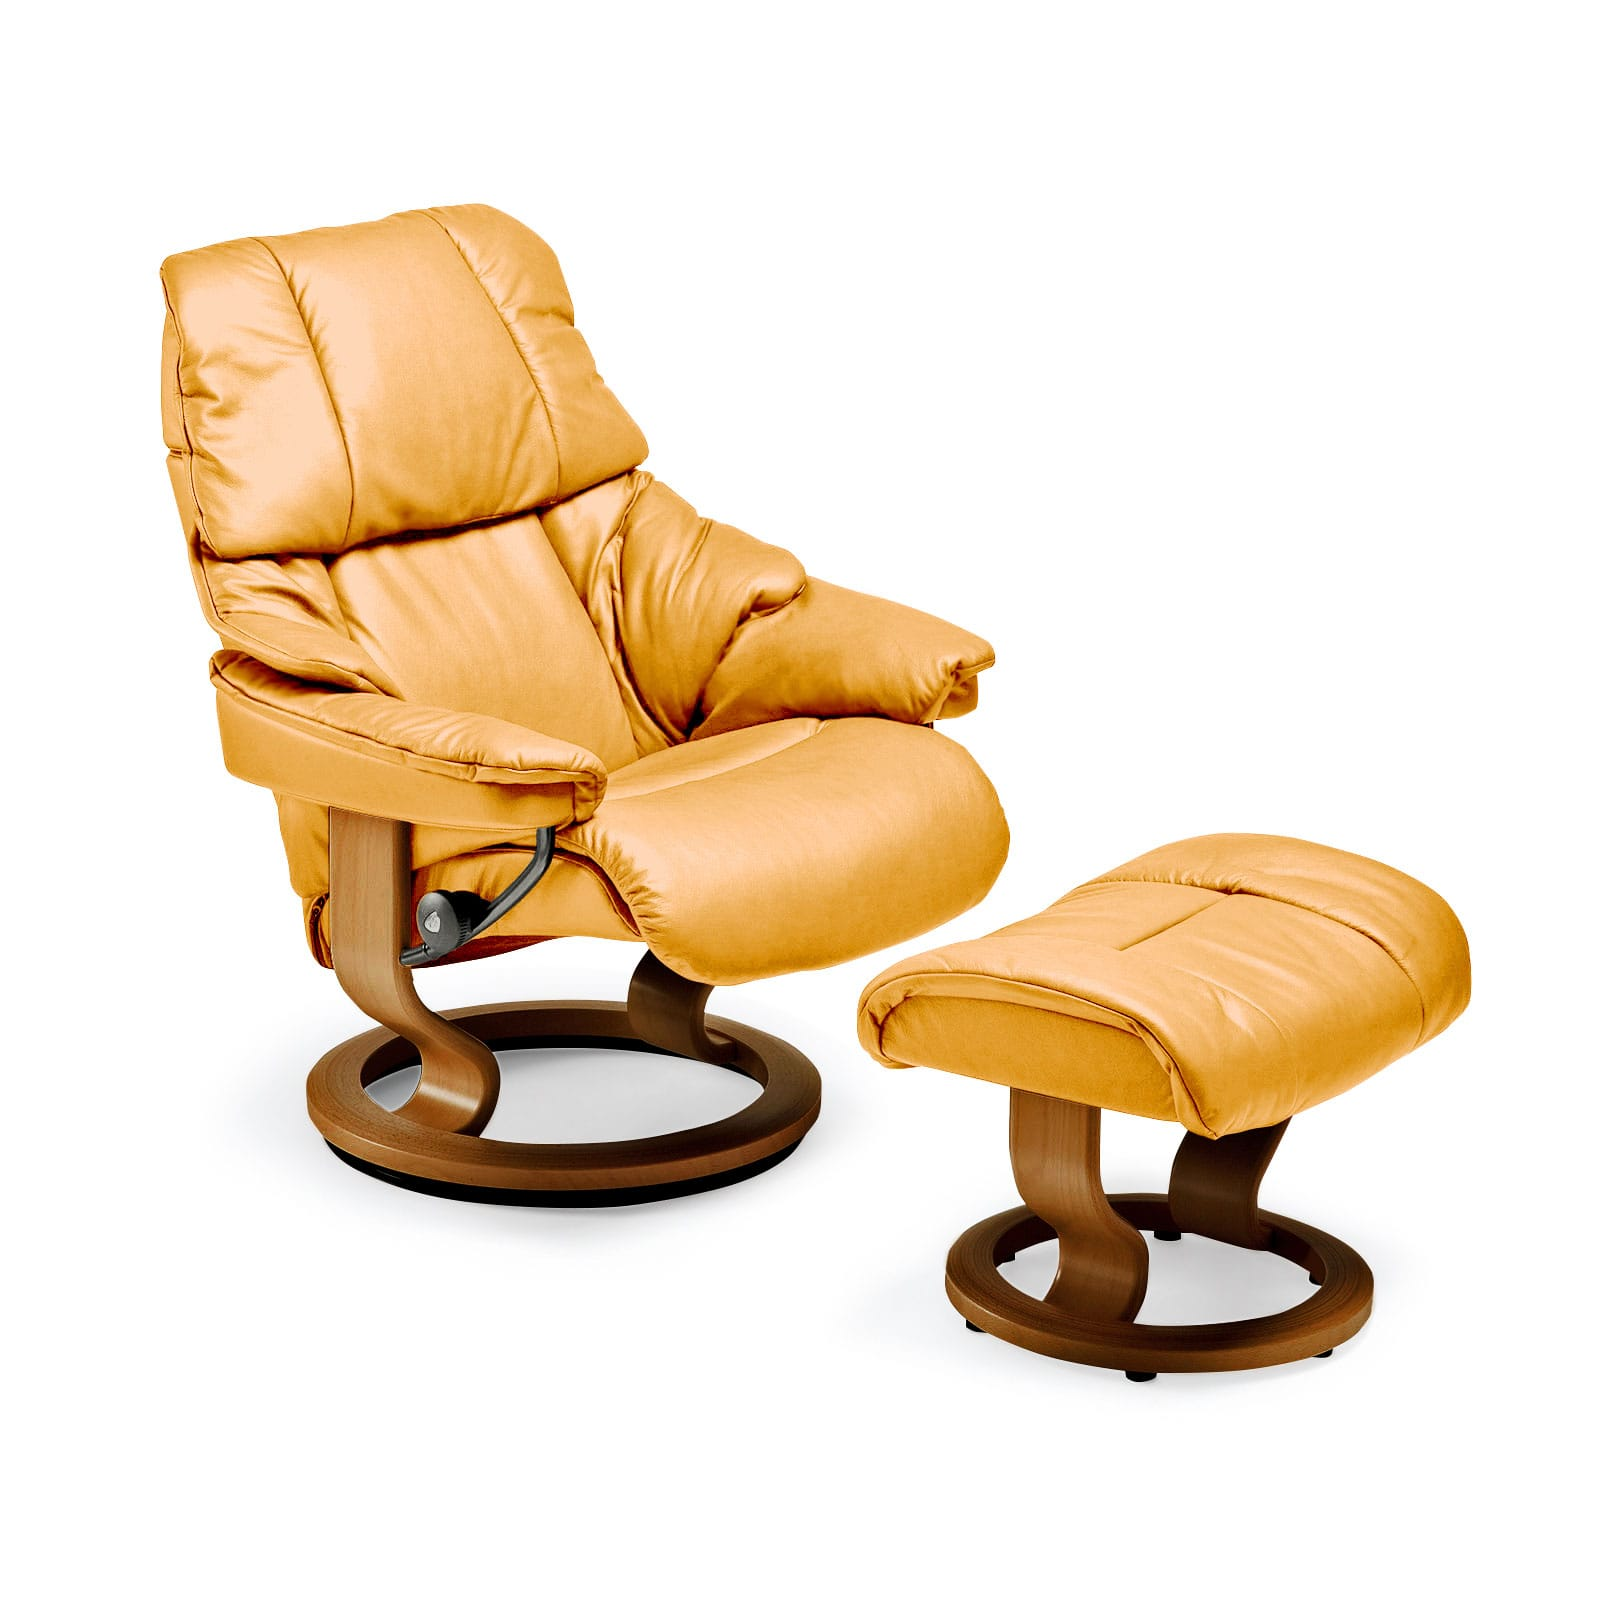 Stressless Sessel Reno L Classic Mit Hocker Stressless